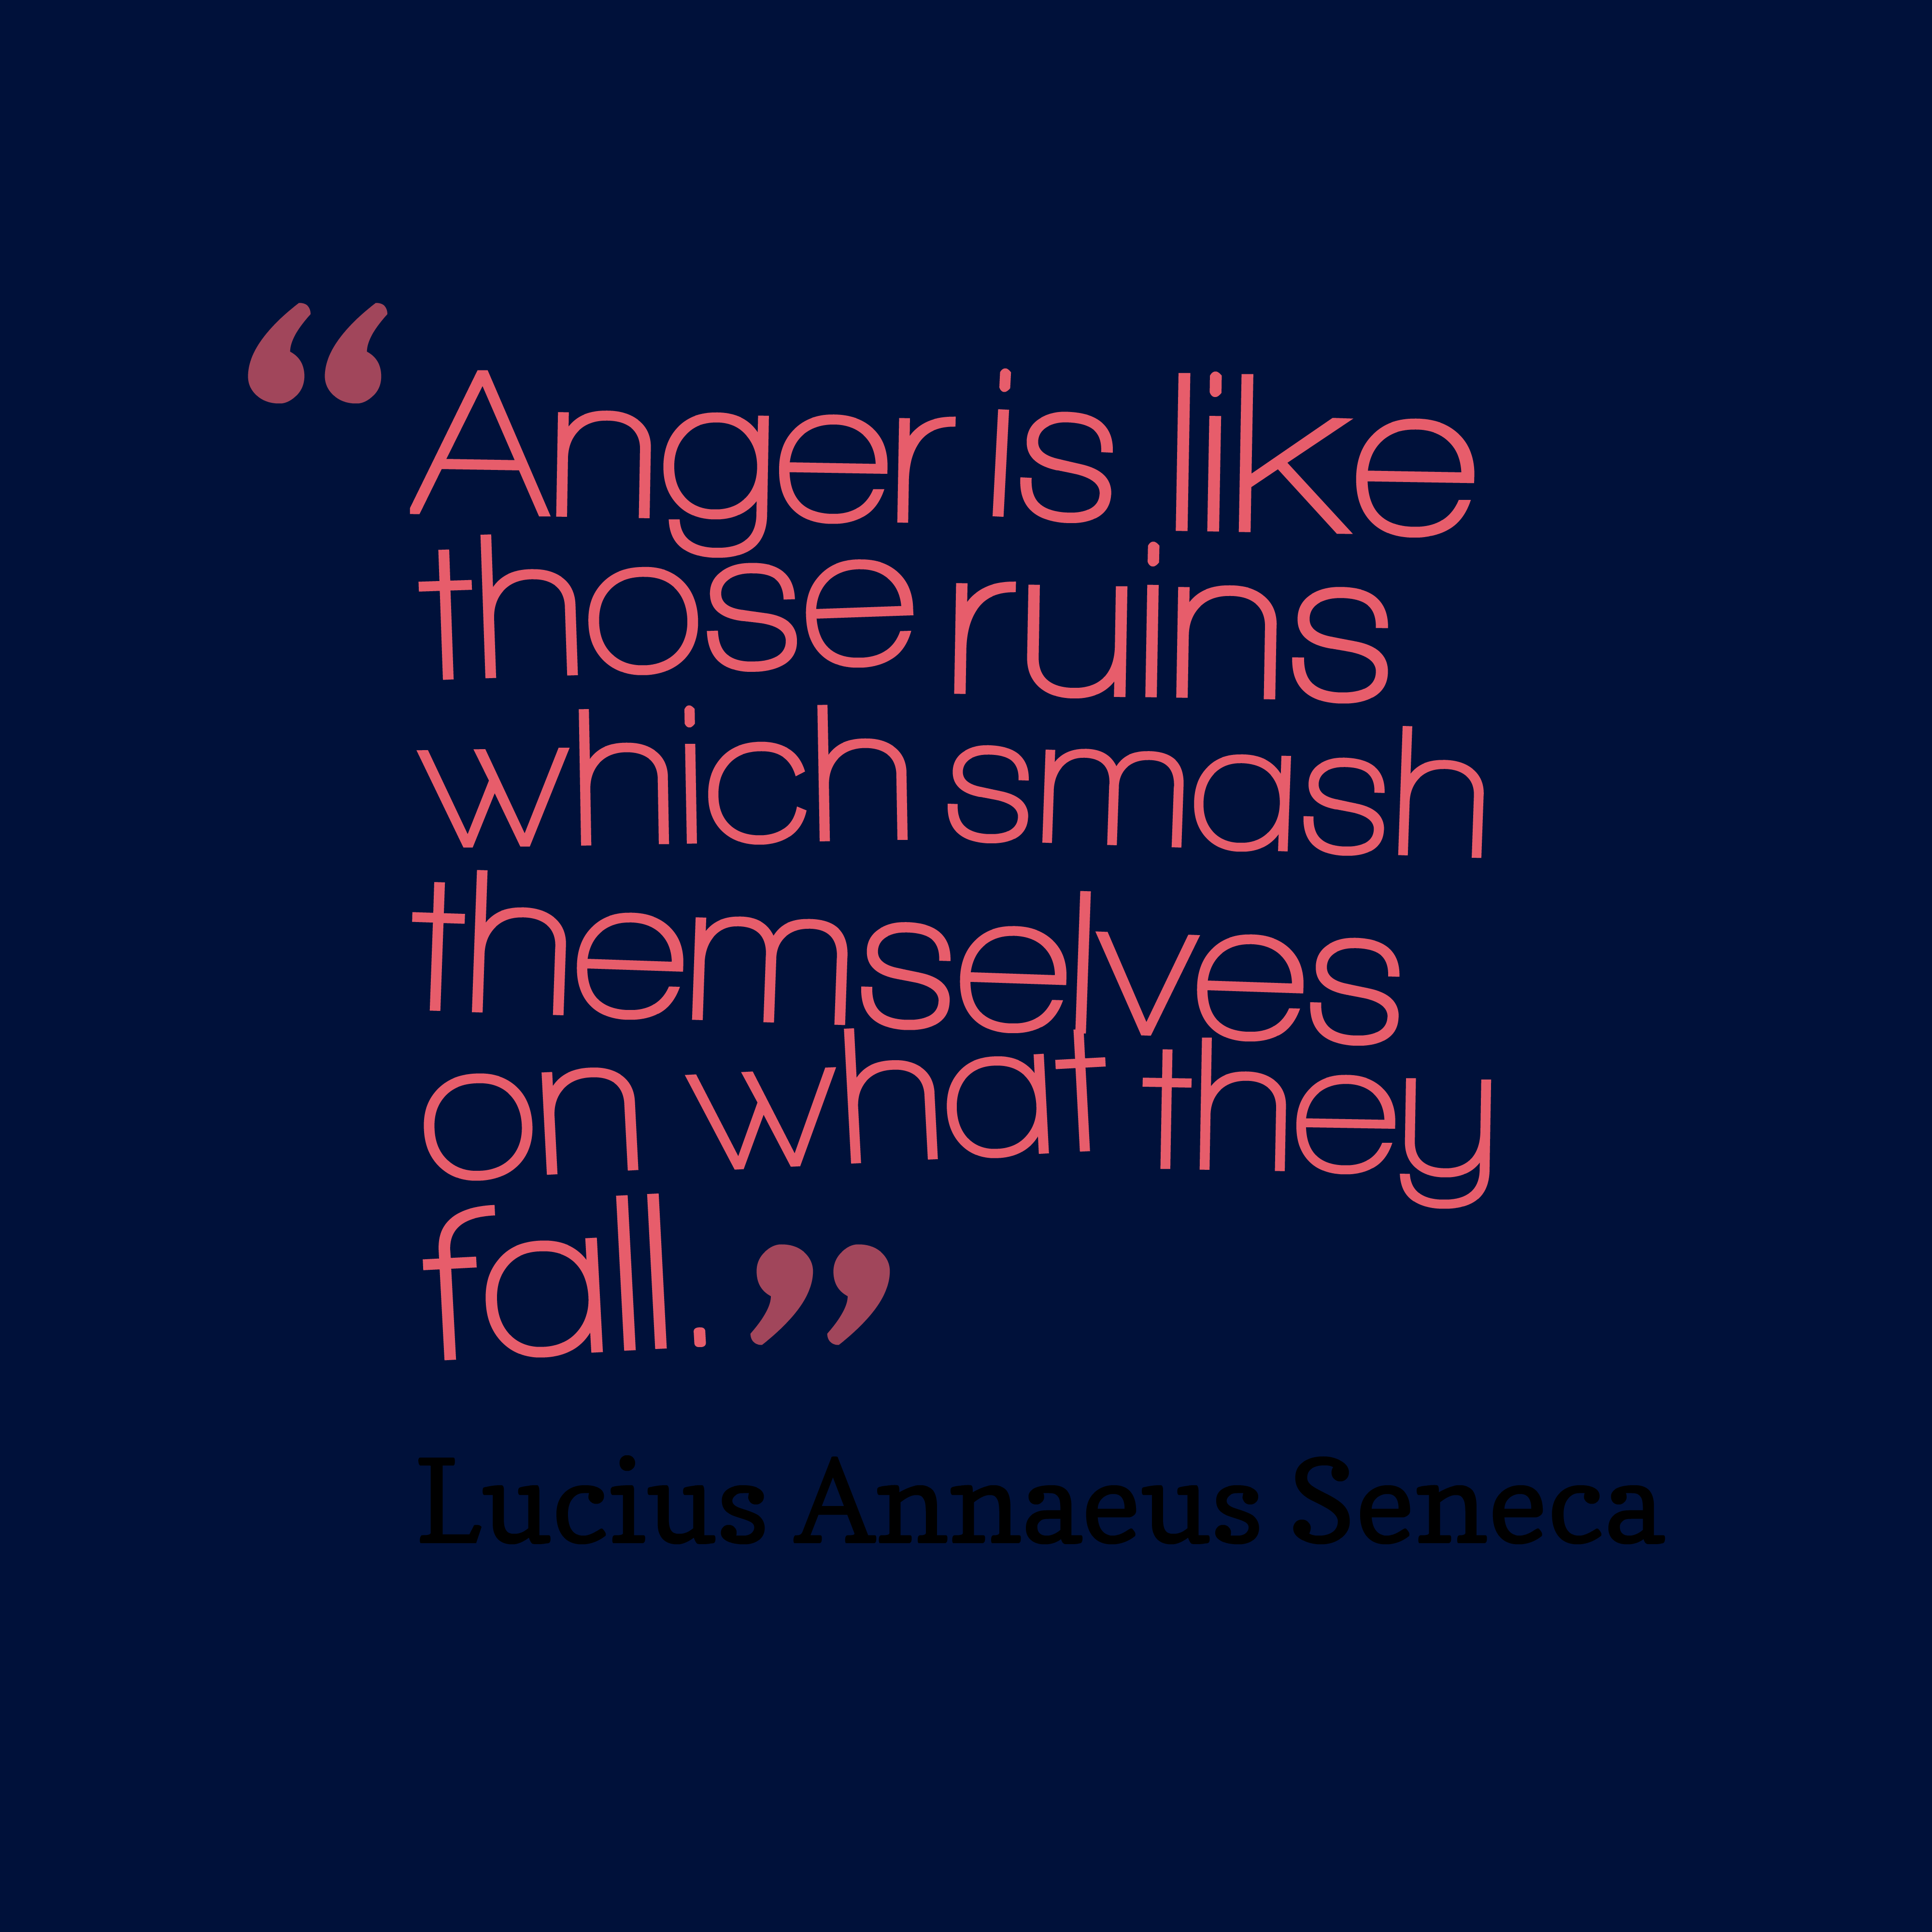 Pics Of People With Quotes Of Anger: Picture » Lucius Annaeus Seneca Quotes About Anger